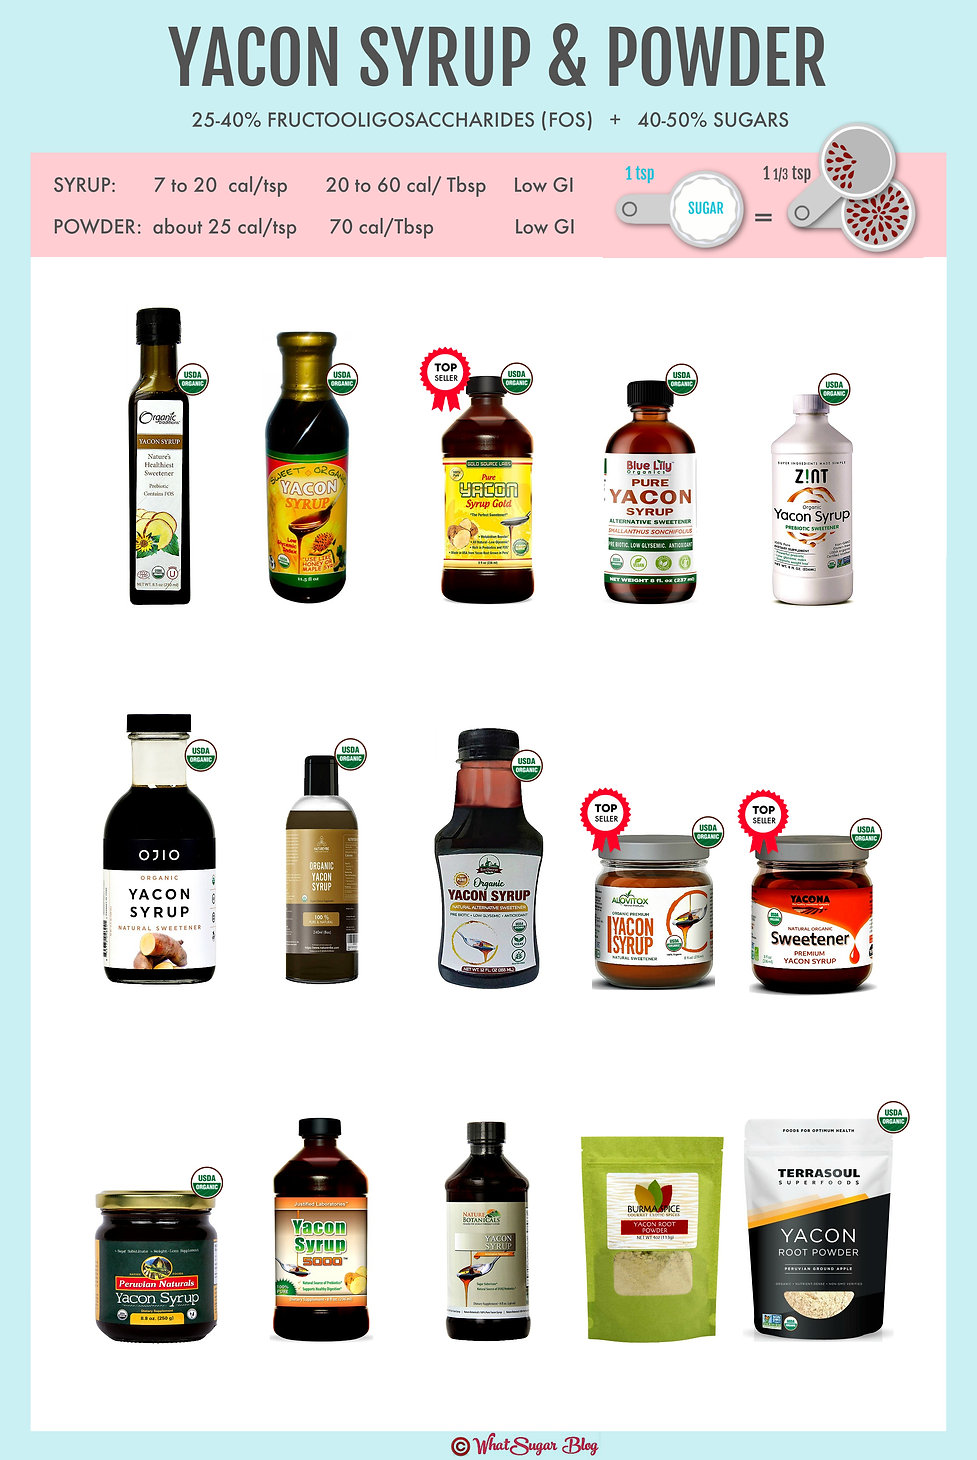 Yacon Syrup and Powder Comparison Chart